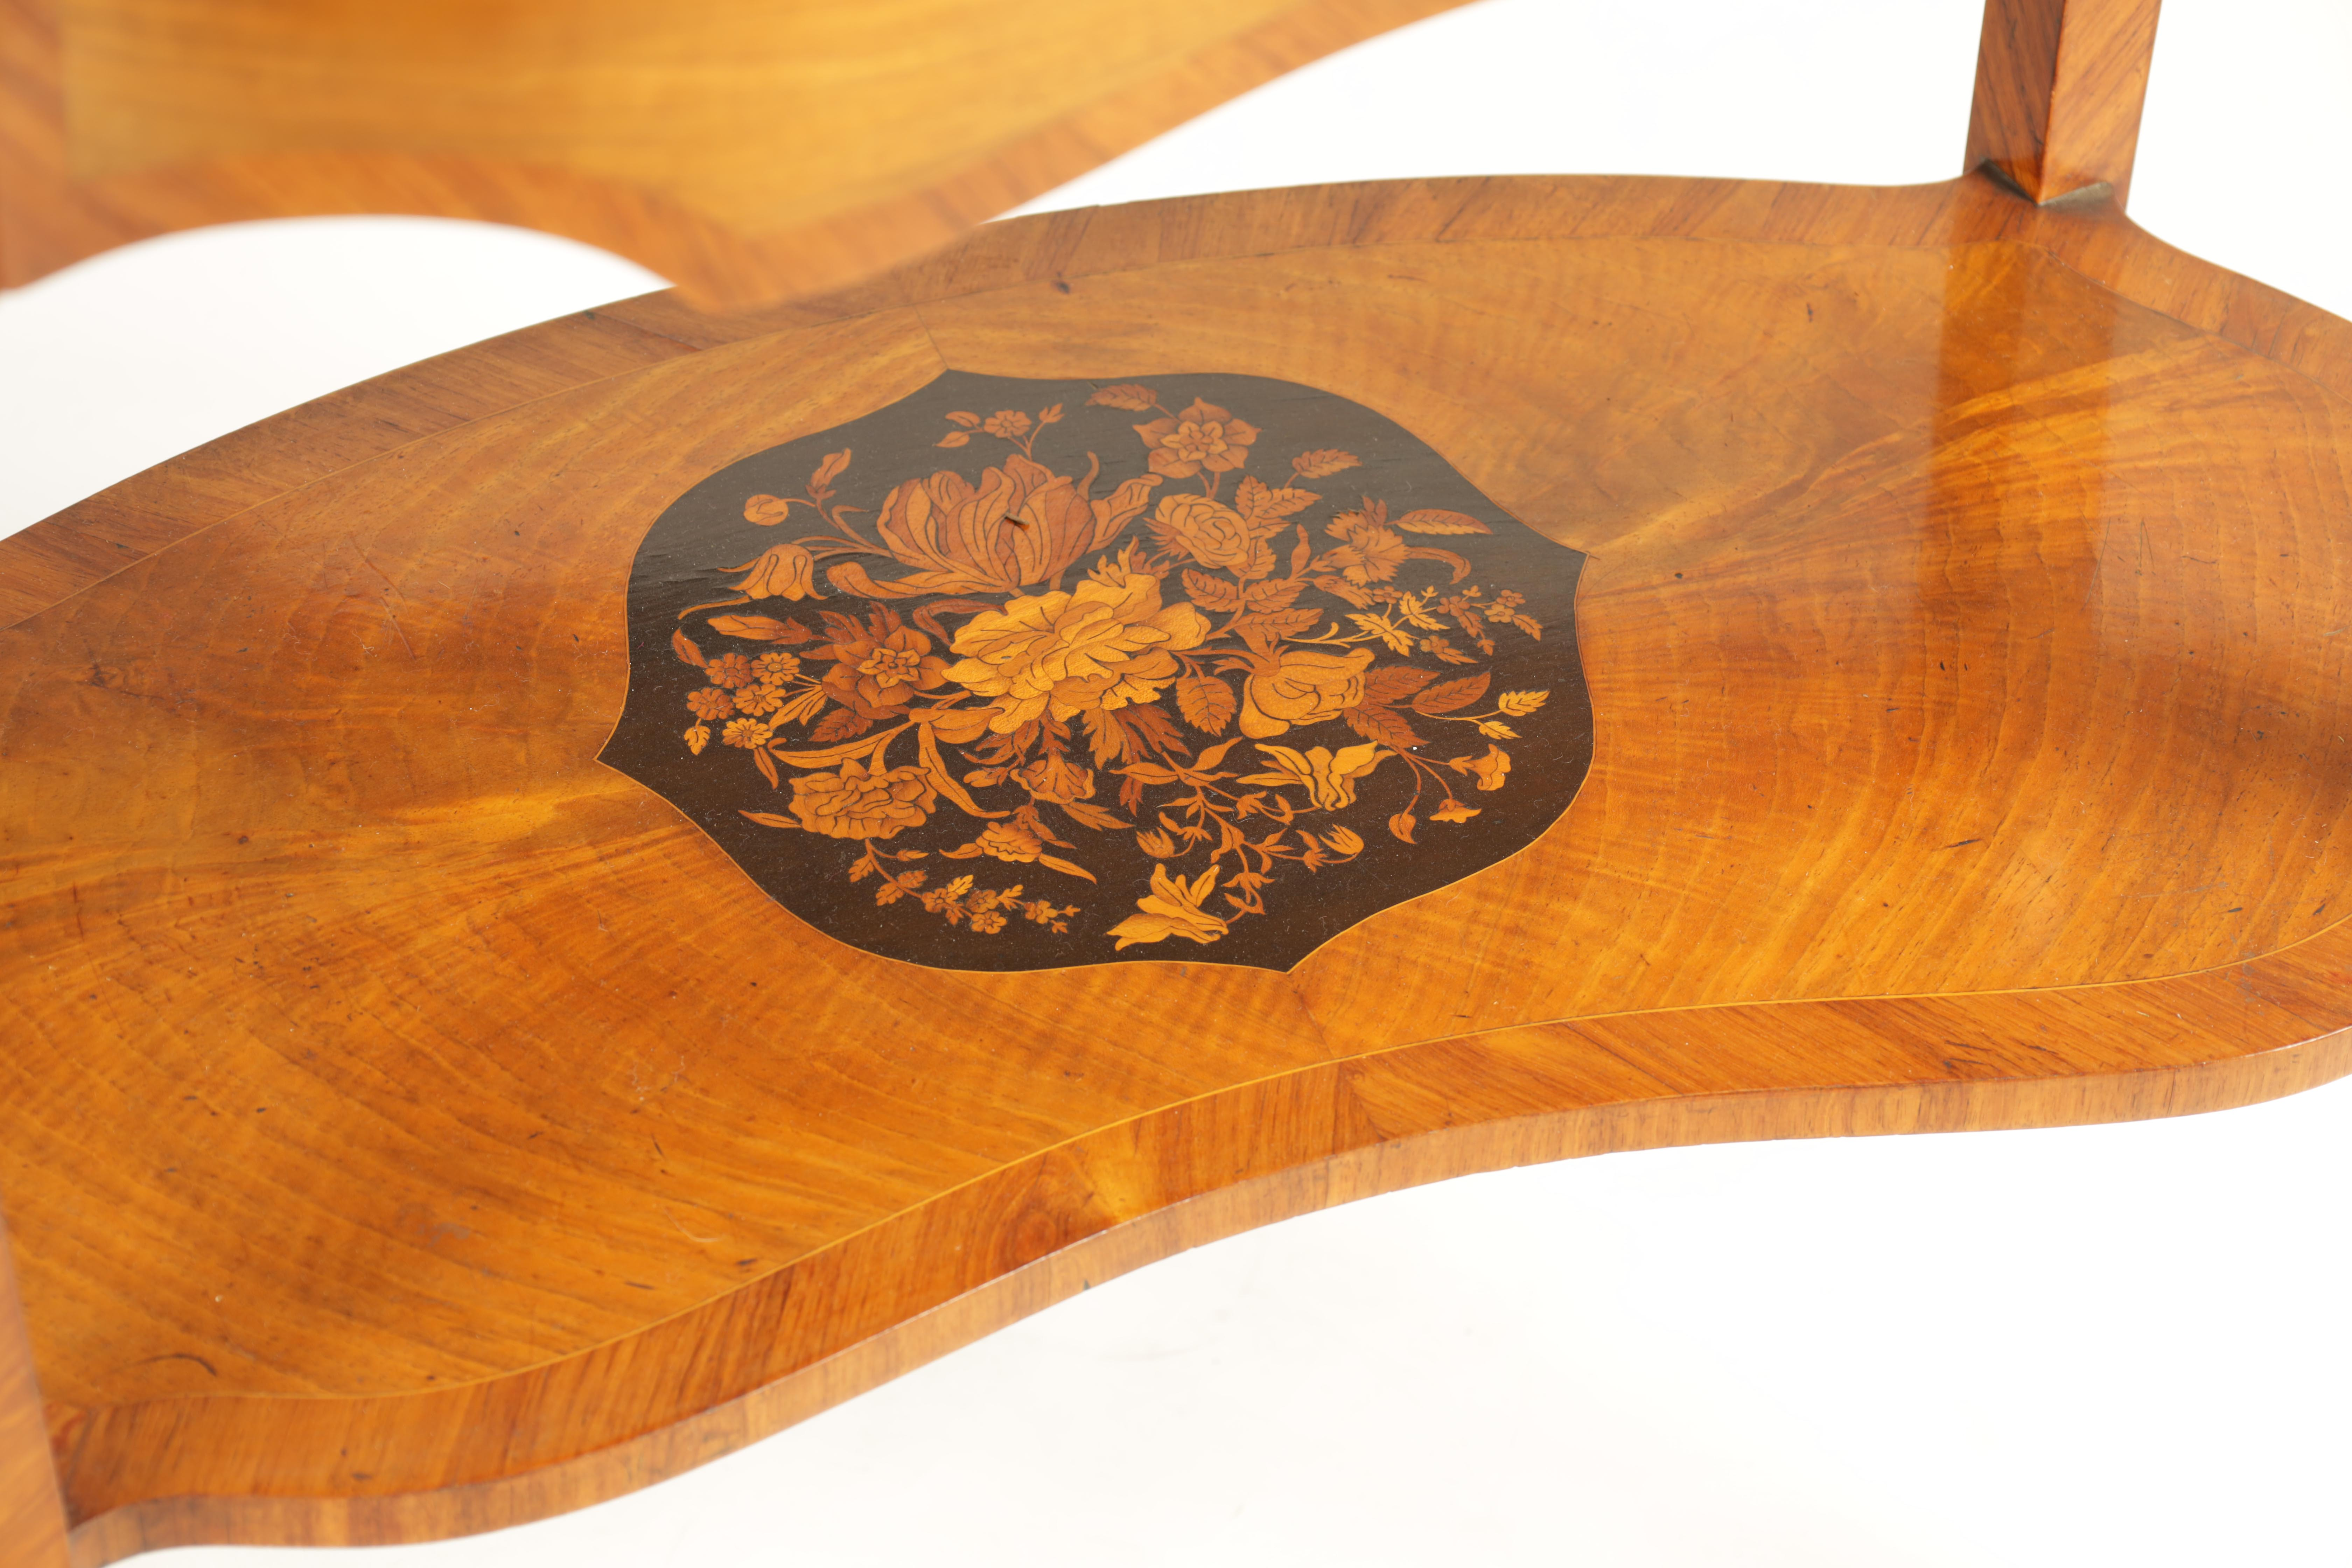 A FINE 19TH CENTURY MARQUETRY INLAID WALNUT KIDNEY SHAPED WRITING TABLE with raised brass - Image 3 of 10